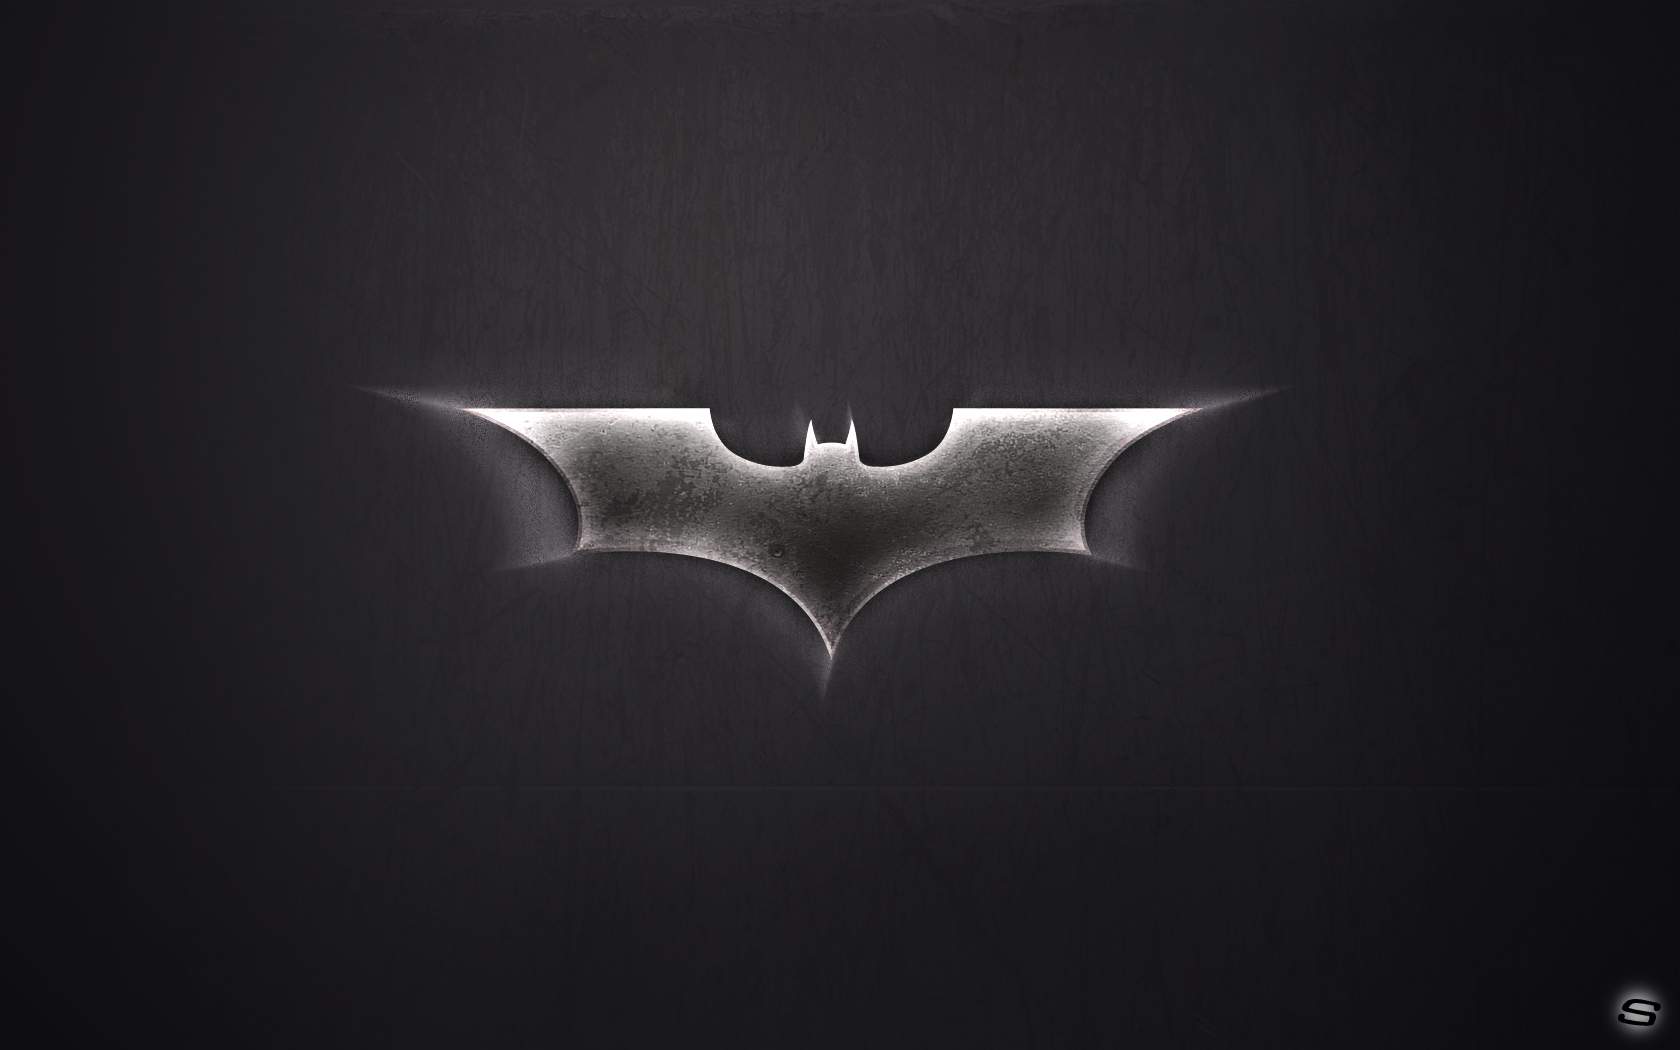 BATMAN LOGO wallpapers are presented on the website Wallpaper 1680x1050